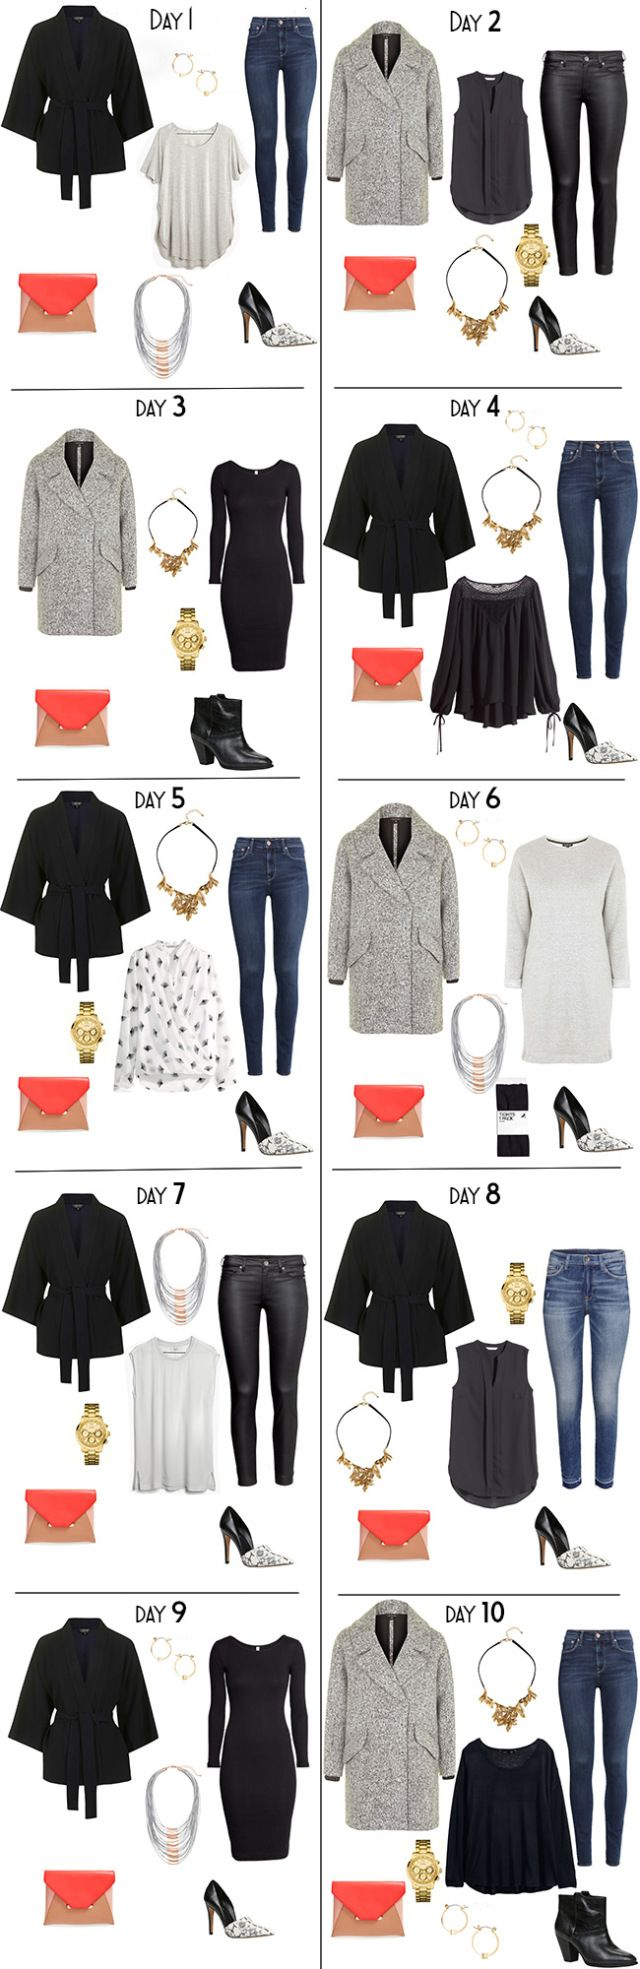 Packing Light. What to Pack for 10 Days in For smart casual business wear. 10 Night Outfit options